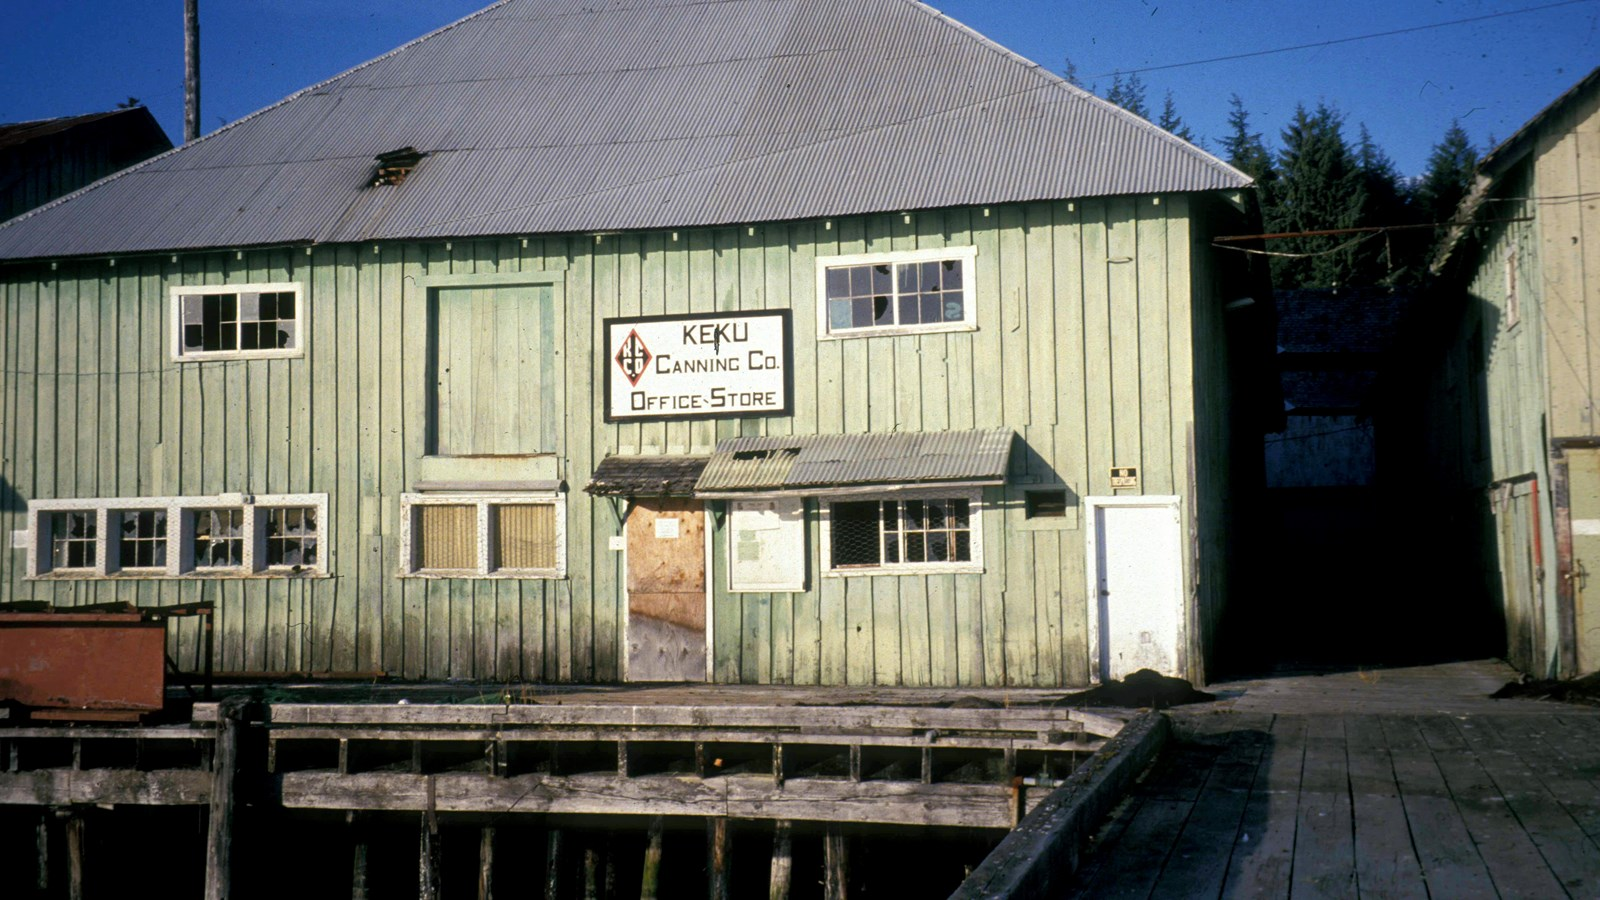 The Keku Cannery Office and Store in a faded green building on a pier.